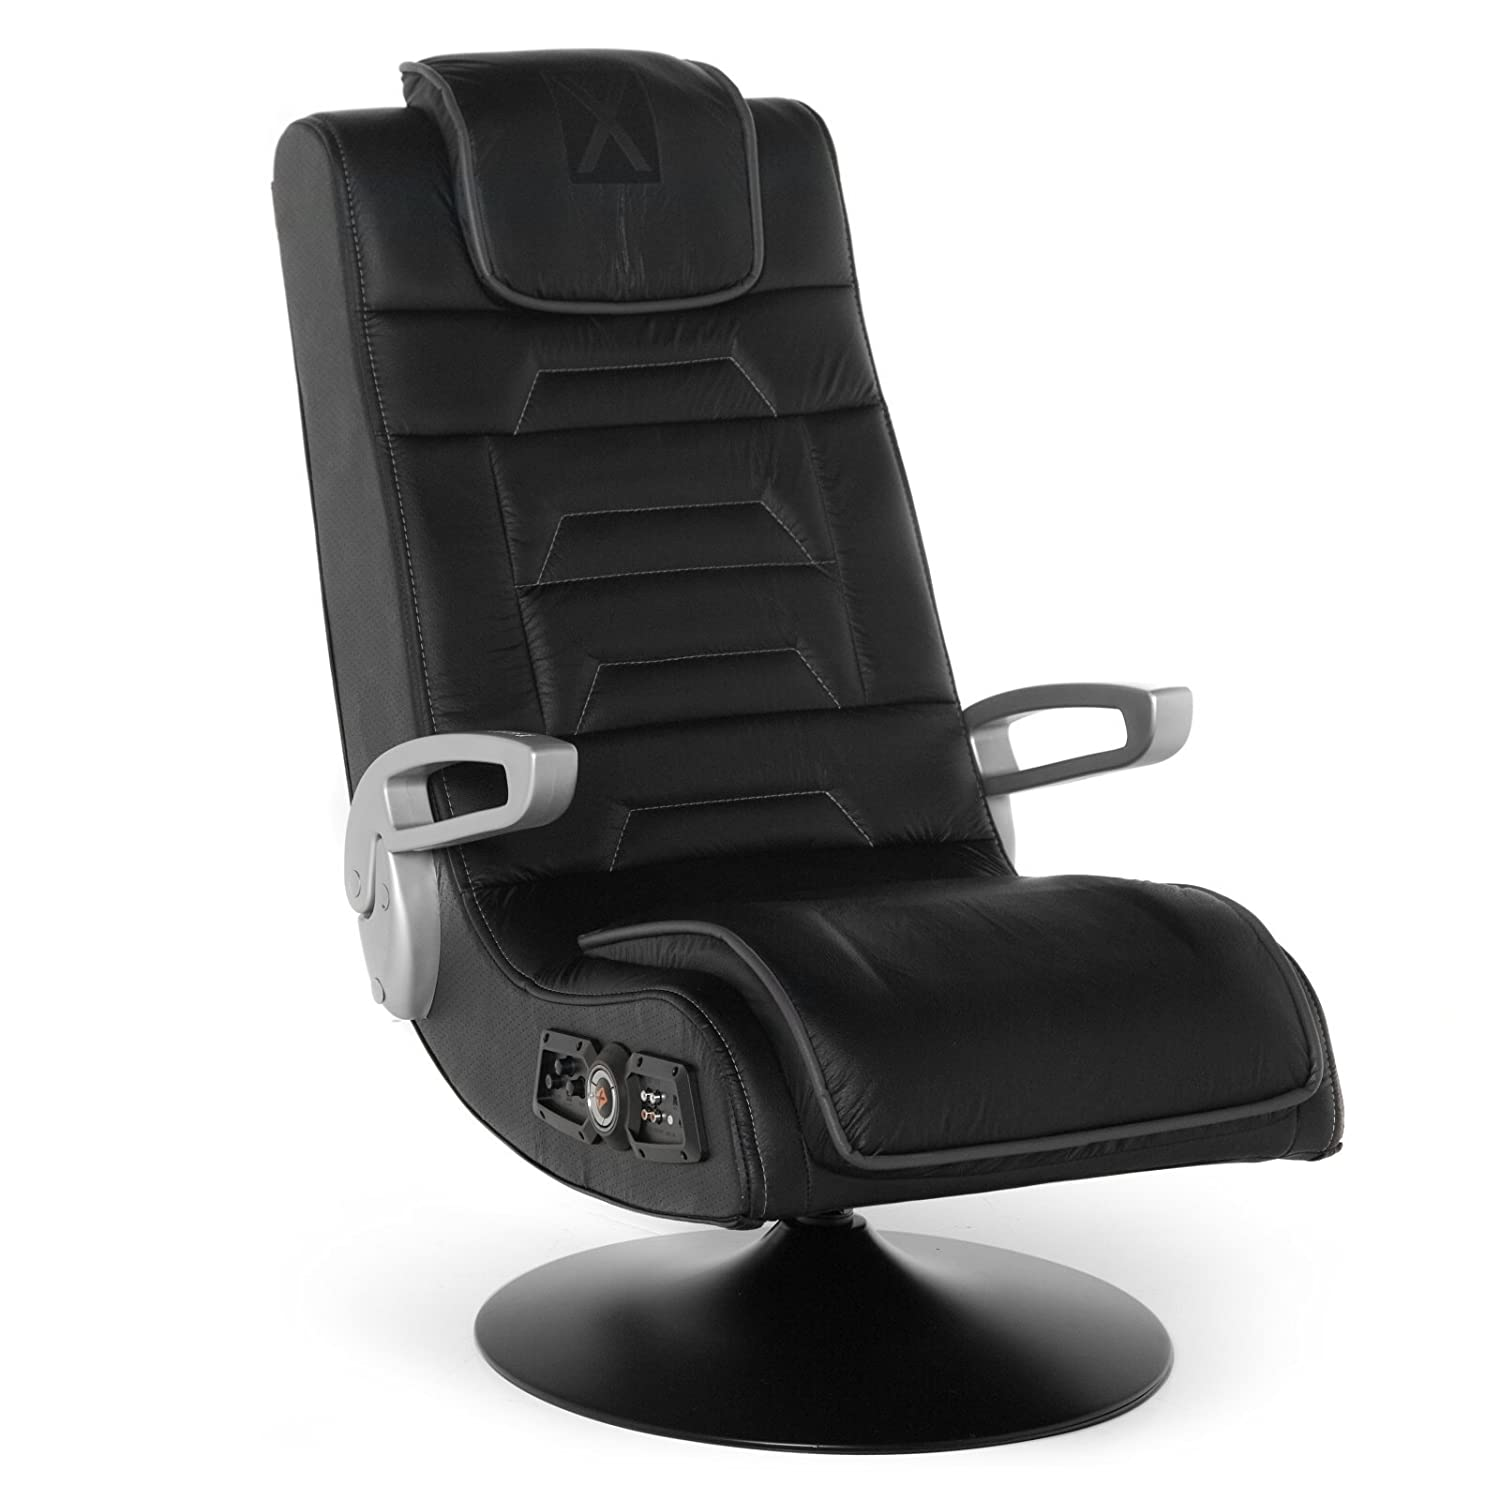 chairs for gaming wegner ch07 shell chair x rocker pro review are still a thing